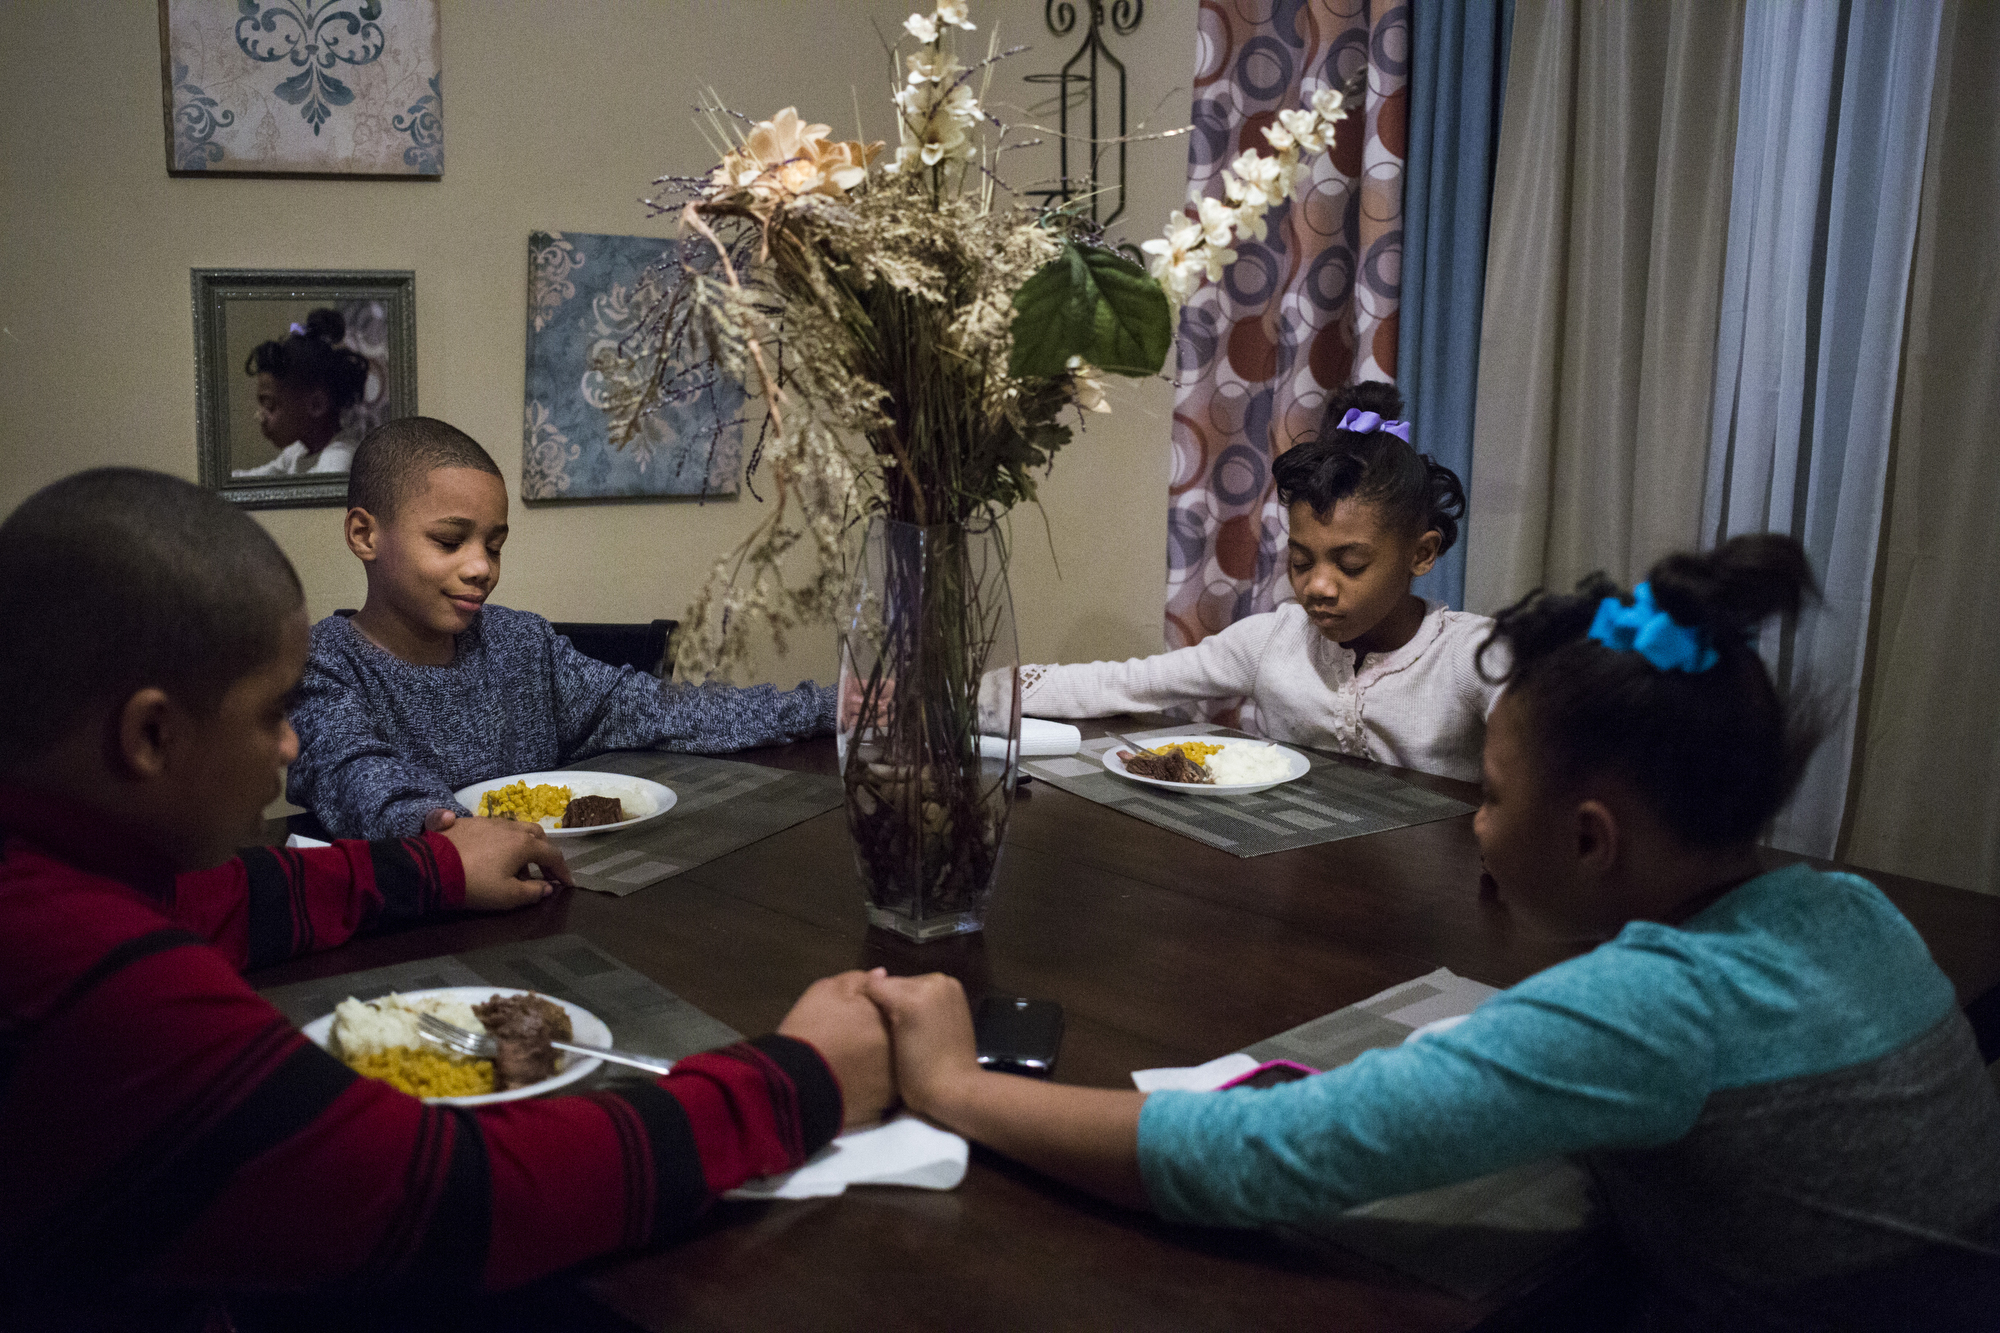 Amaria Dirrell, 8, lefts leads her siblings in prayer over their dinner, which their mother had prepared for them after a long day working as a caretaker, at their home in Flint, Michigan. The four are among six children in the home who faced elevated levels of lead in their blood amidst the city's ongoing water crisis.